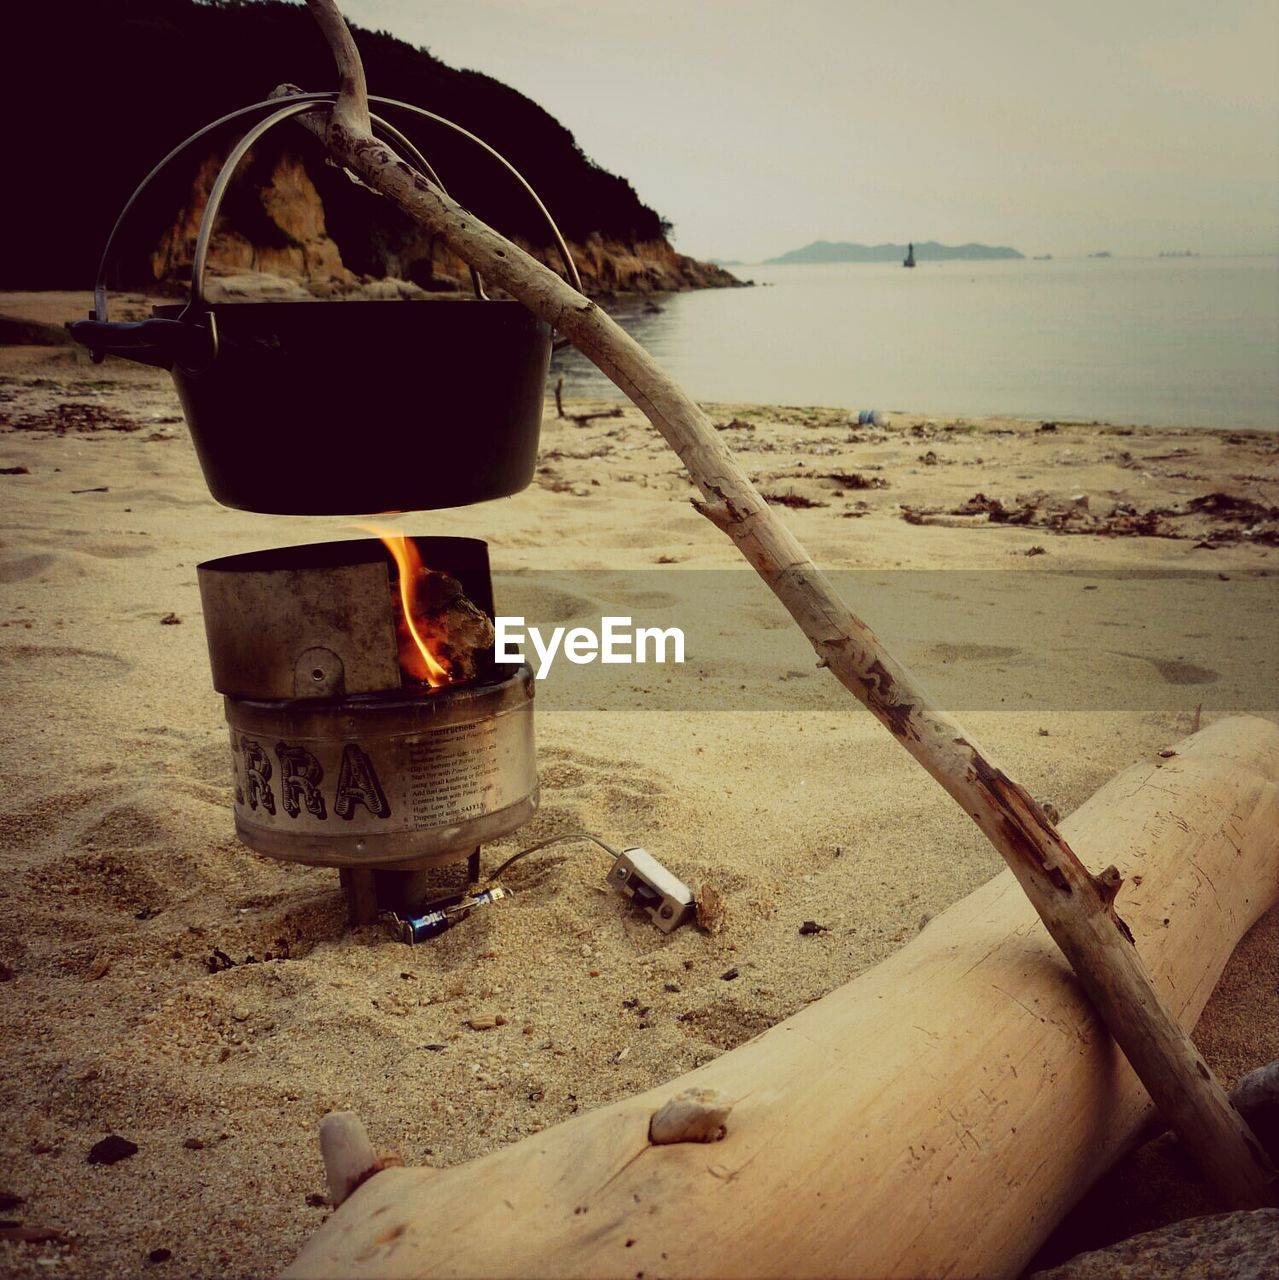 Container Hanging On Twig Above Burning Stove At Sandy Beach